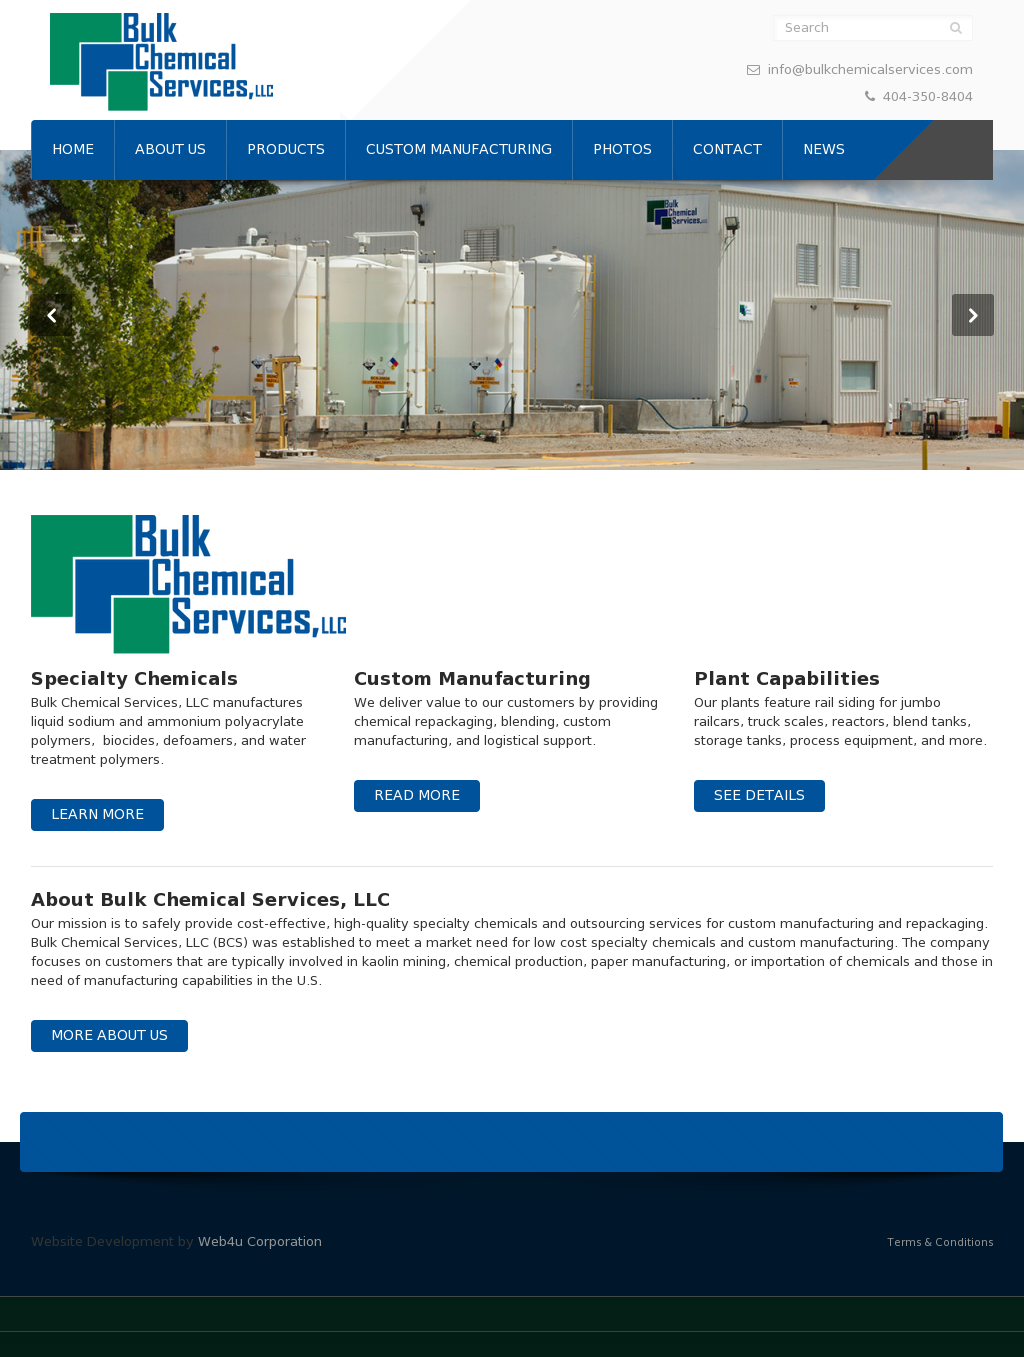 Bulk Chemical Services Competitors, Revenue and Employees